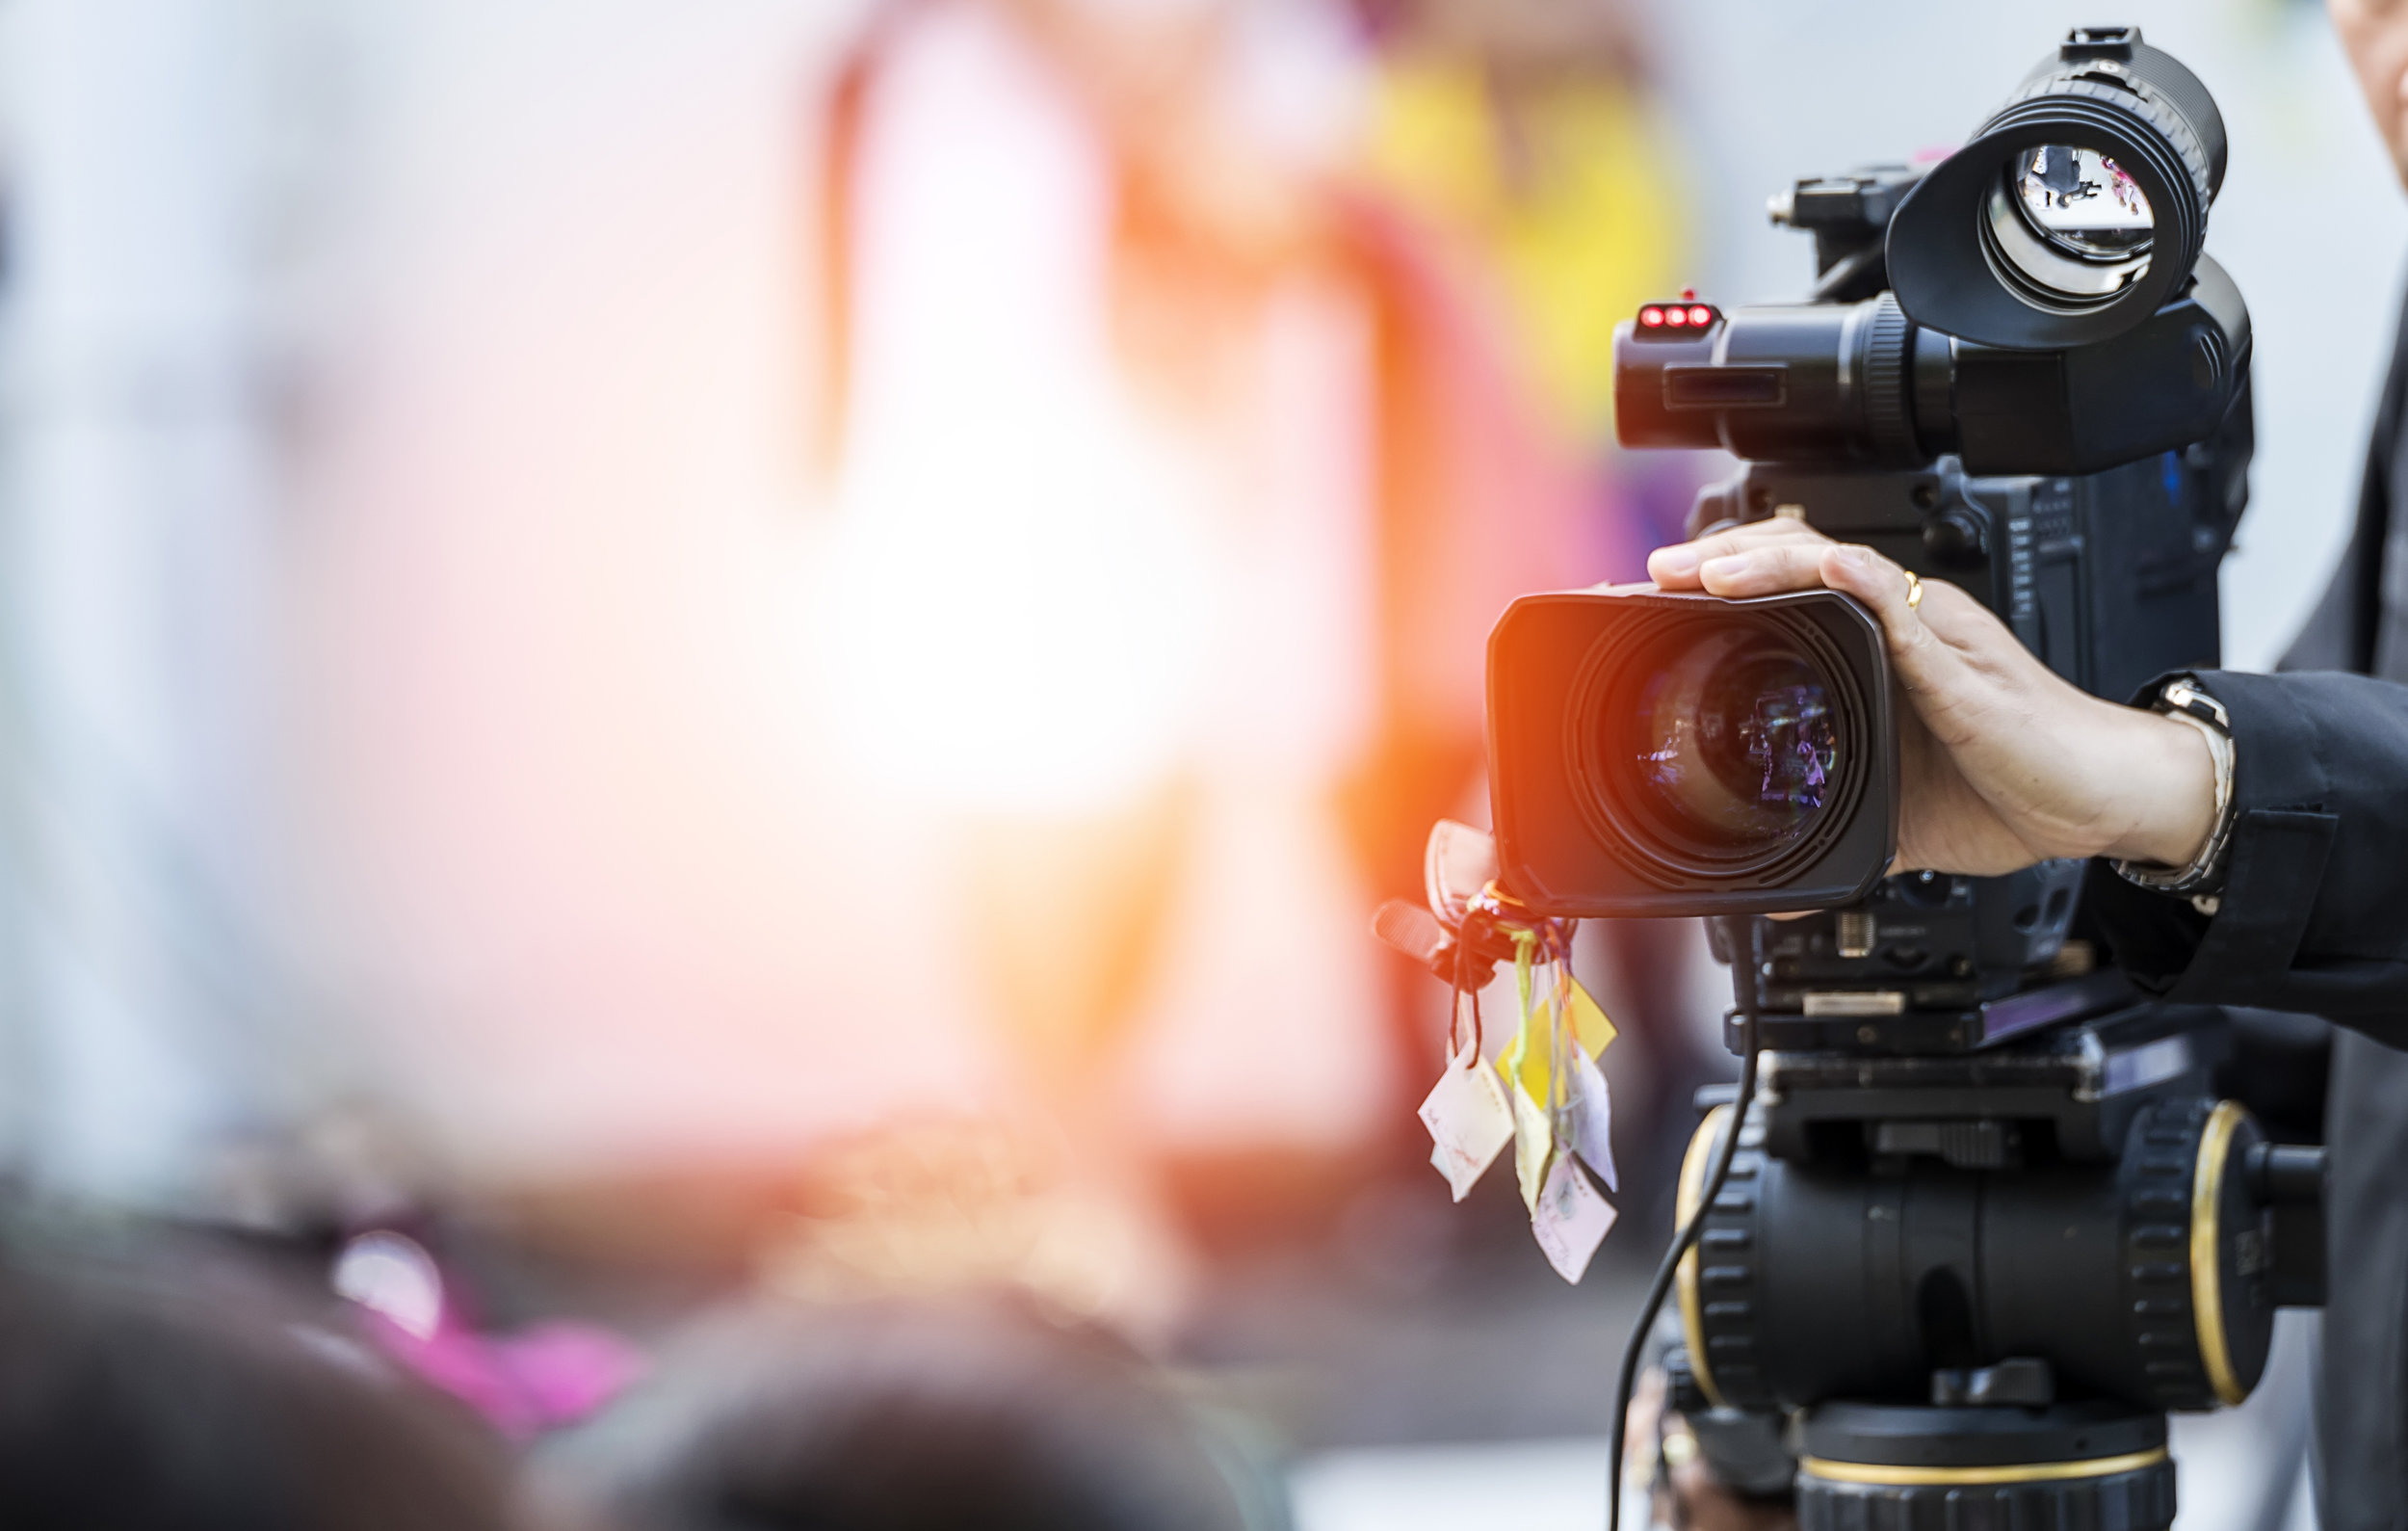 Commercial Video Production: - CONVENTION, EXPO, TESTIMONIAL, PROMOTIONAL, MARKETING, KICK STARTER, TRAINING, SOCIAL MEDIA VIDEO PRODUCTION, REMOTE VIDEO PRODUCTION